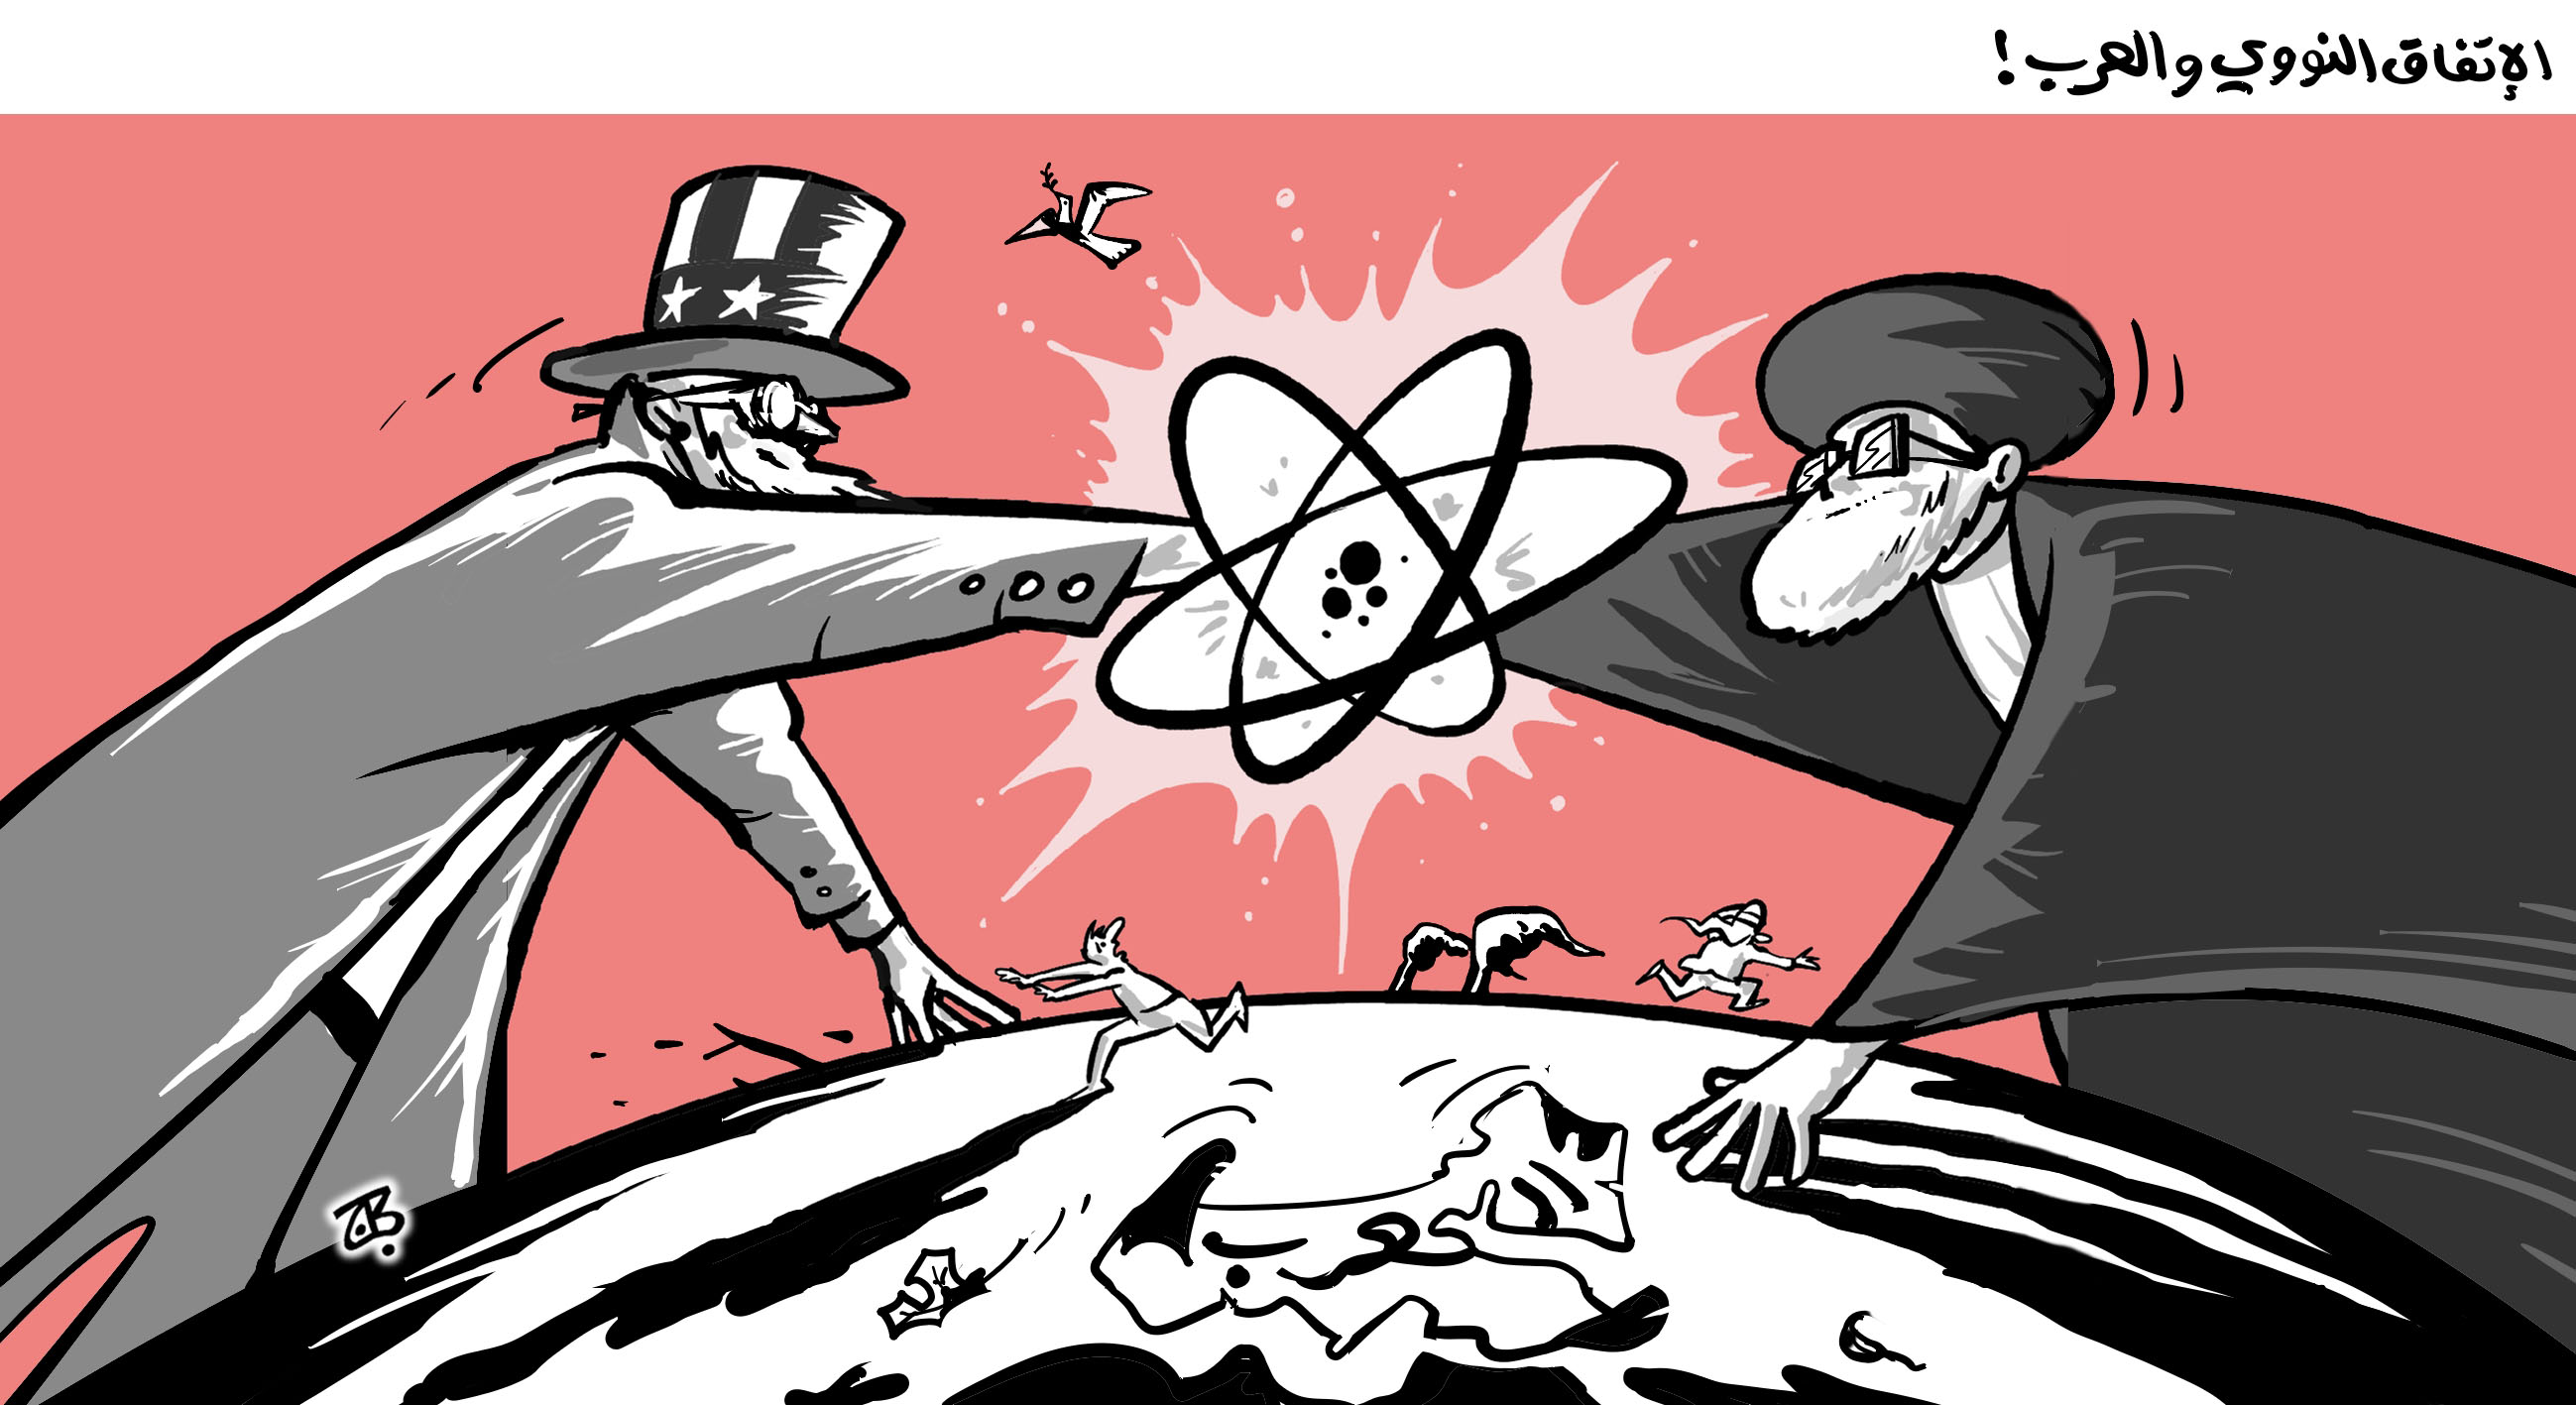 iran usa west agreement hand shake atomic bomb peace bomb wmd recycled 15-04-27